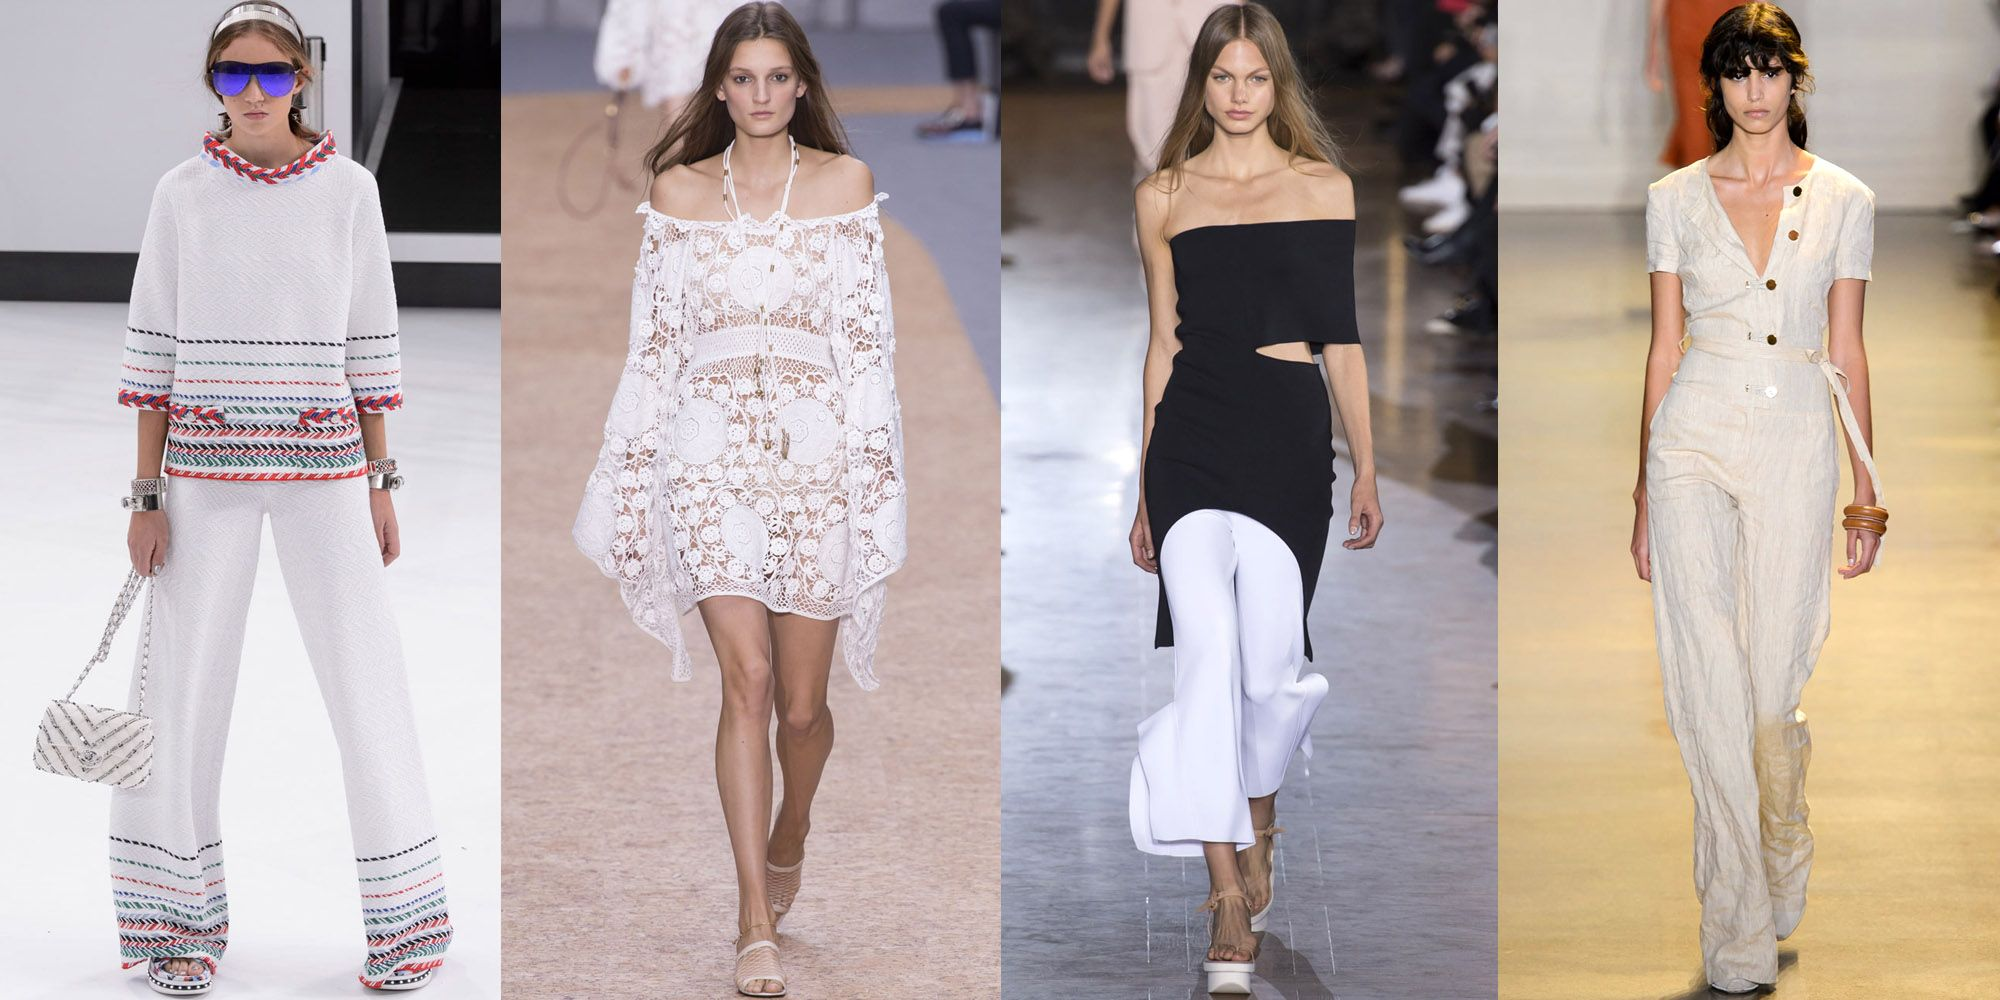 <p>My spring sartorial plan involves a lot of light colors and looks that are more beach than city without sacrificing elevated style. Chanel, Chloé, Stella McCartney and Altuzarra deliver. </p>